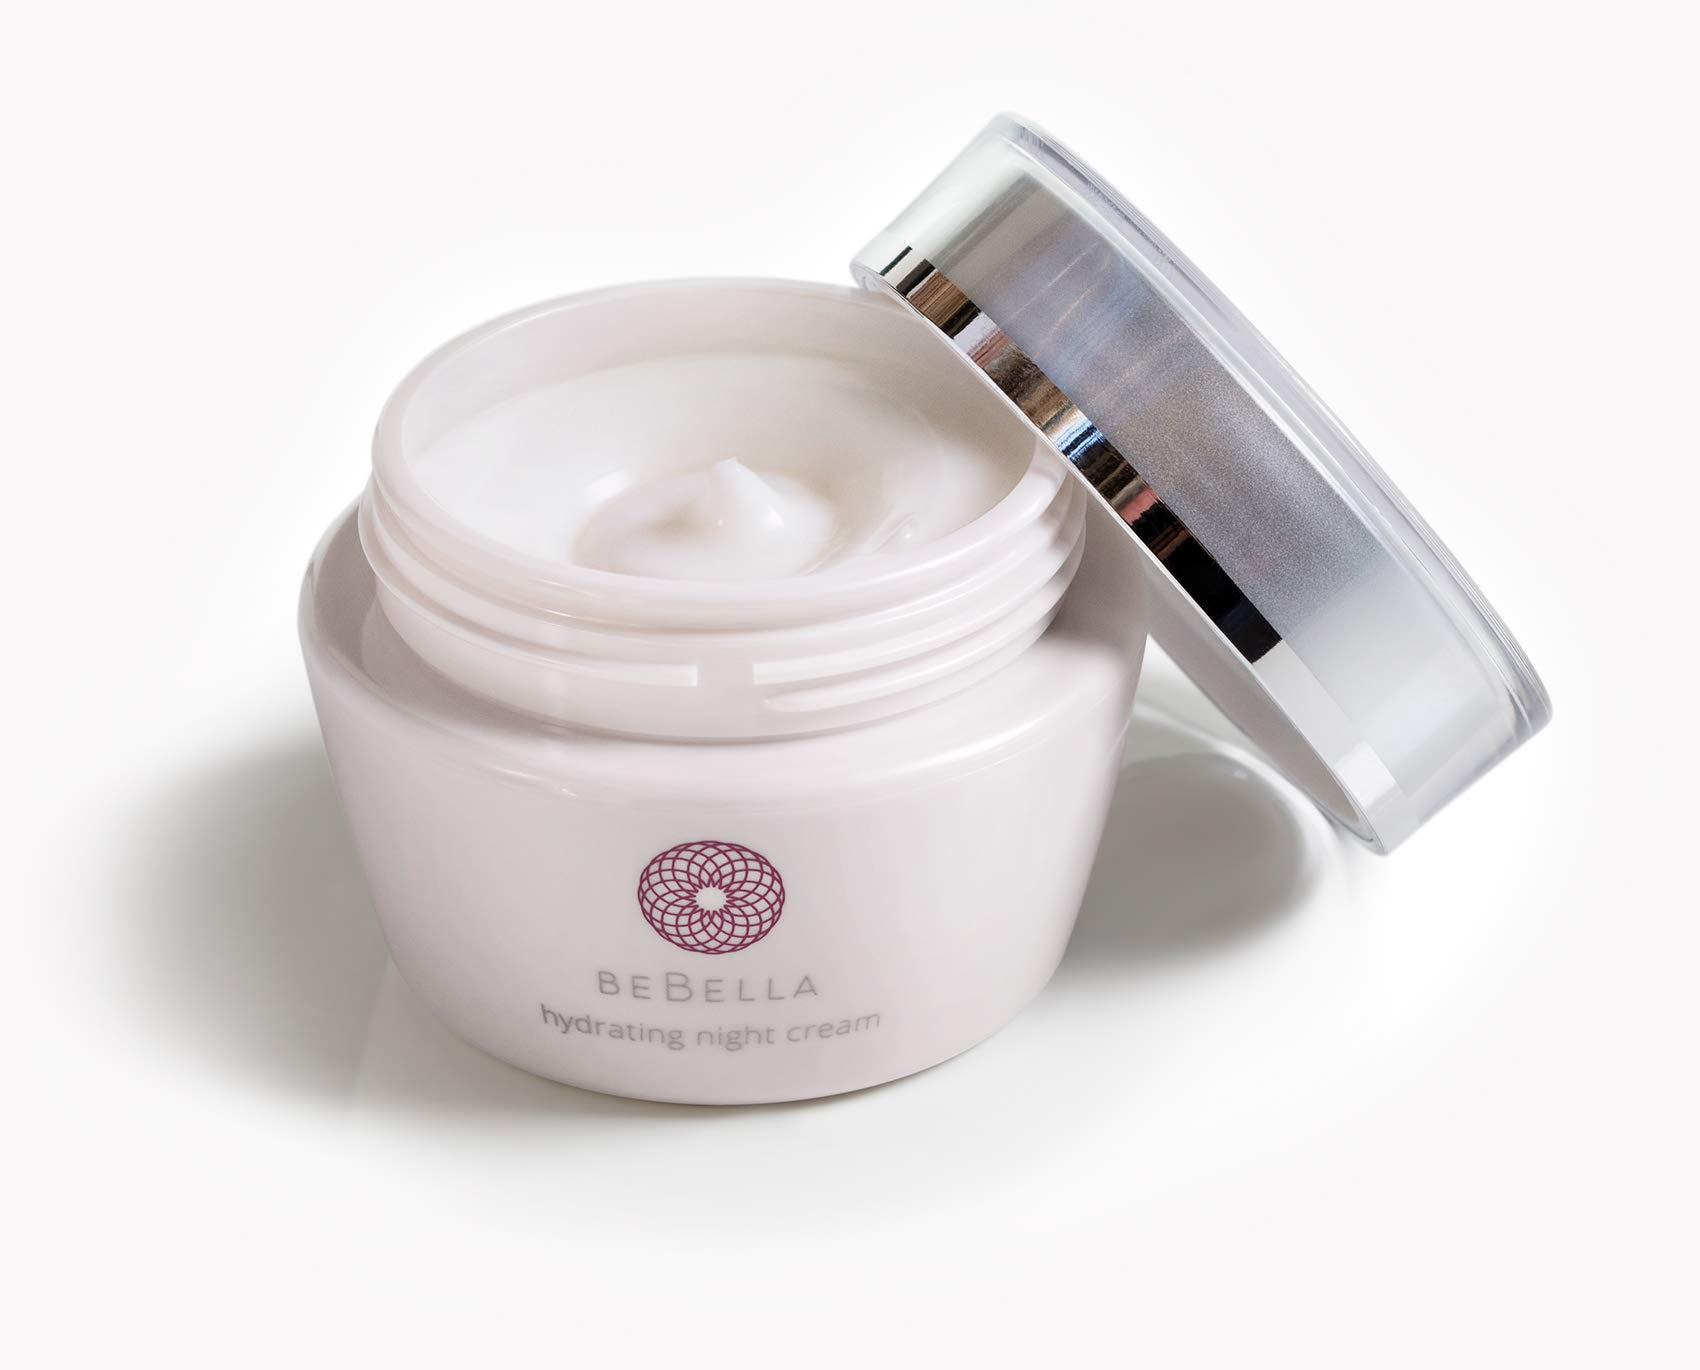 BeBella Probiotic Hydrating Night Cream - Moisturizes and Hydrates Skin to Feel Smooth and Supple - Healthy Skin Care Recovery Natural Defense Anti-Aging Reduce Wrinkles Look Younger Daily